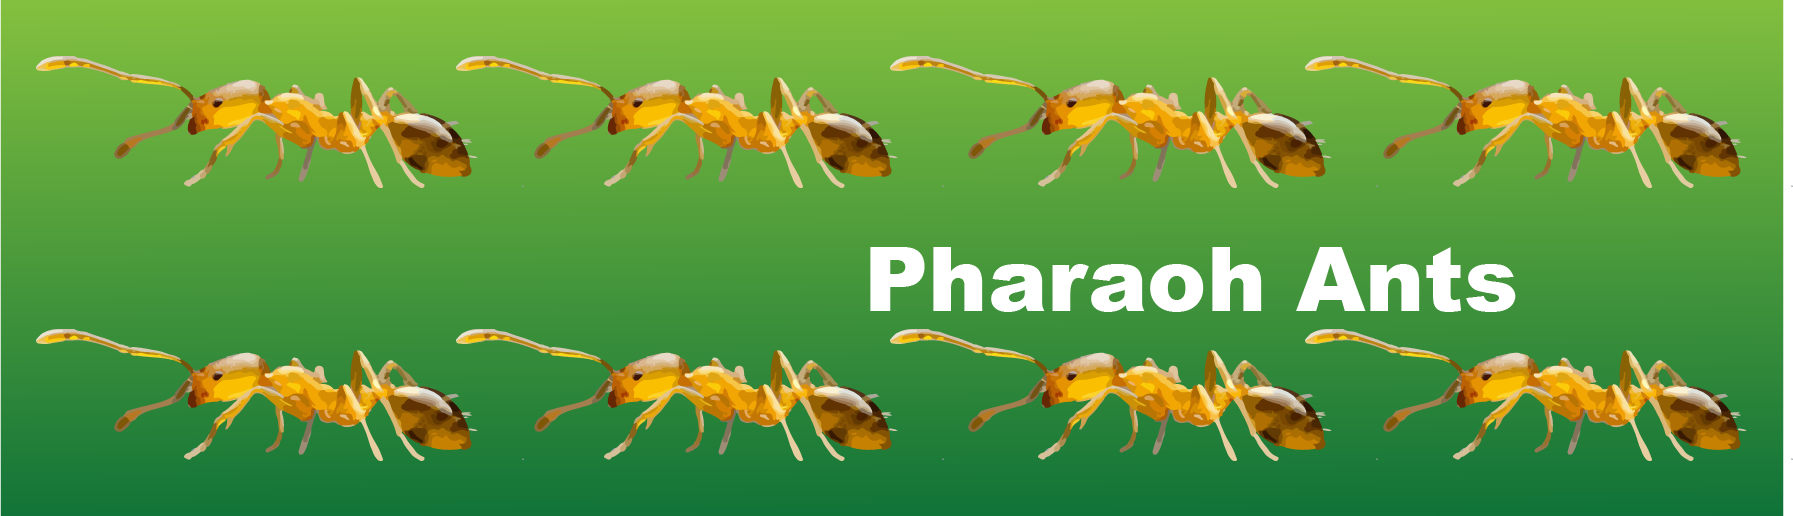 pharaoh ants illustration graphic design